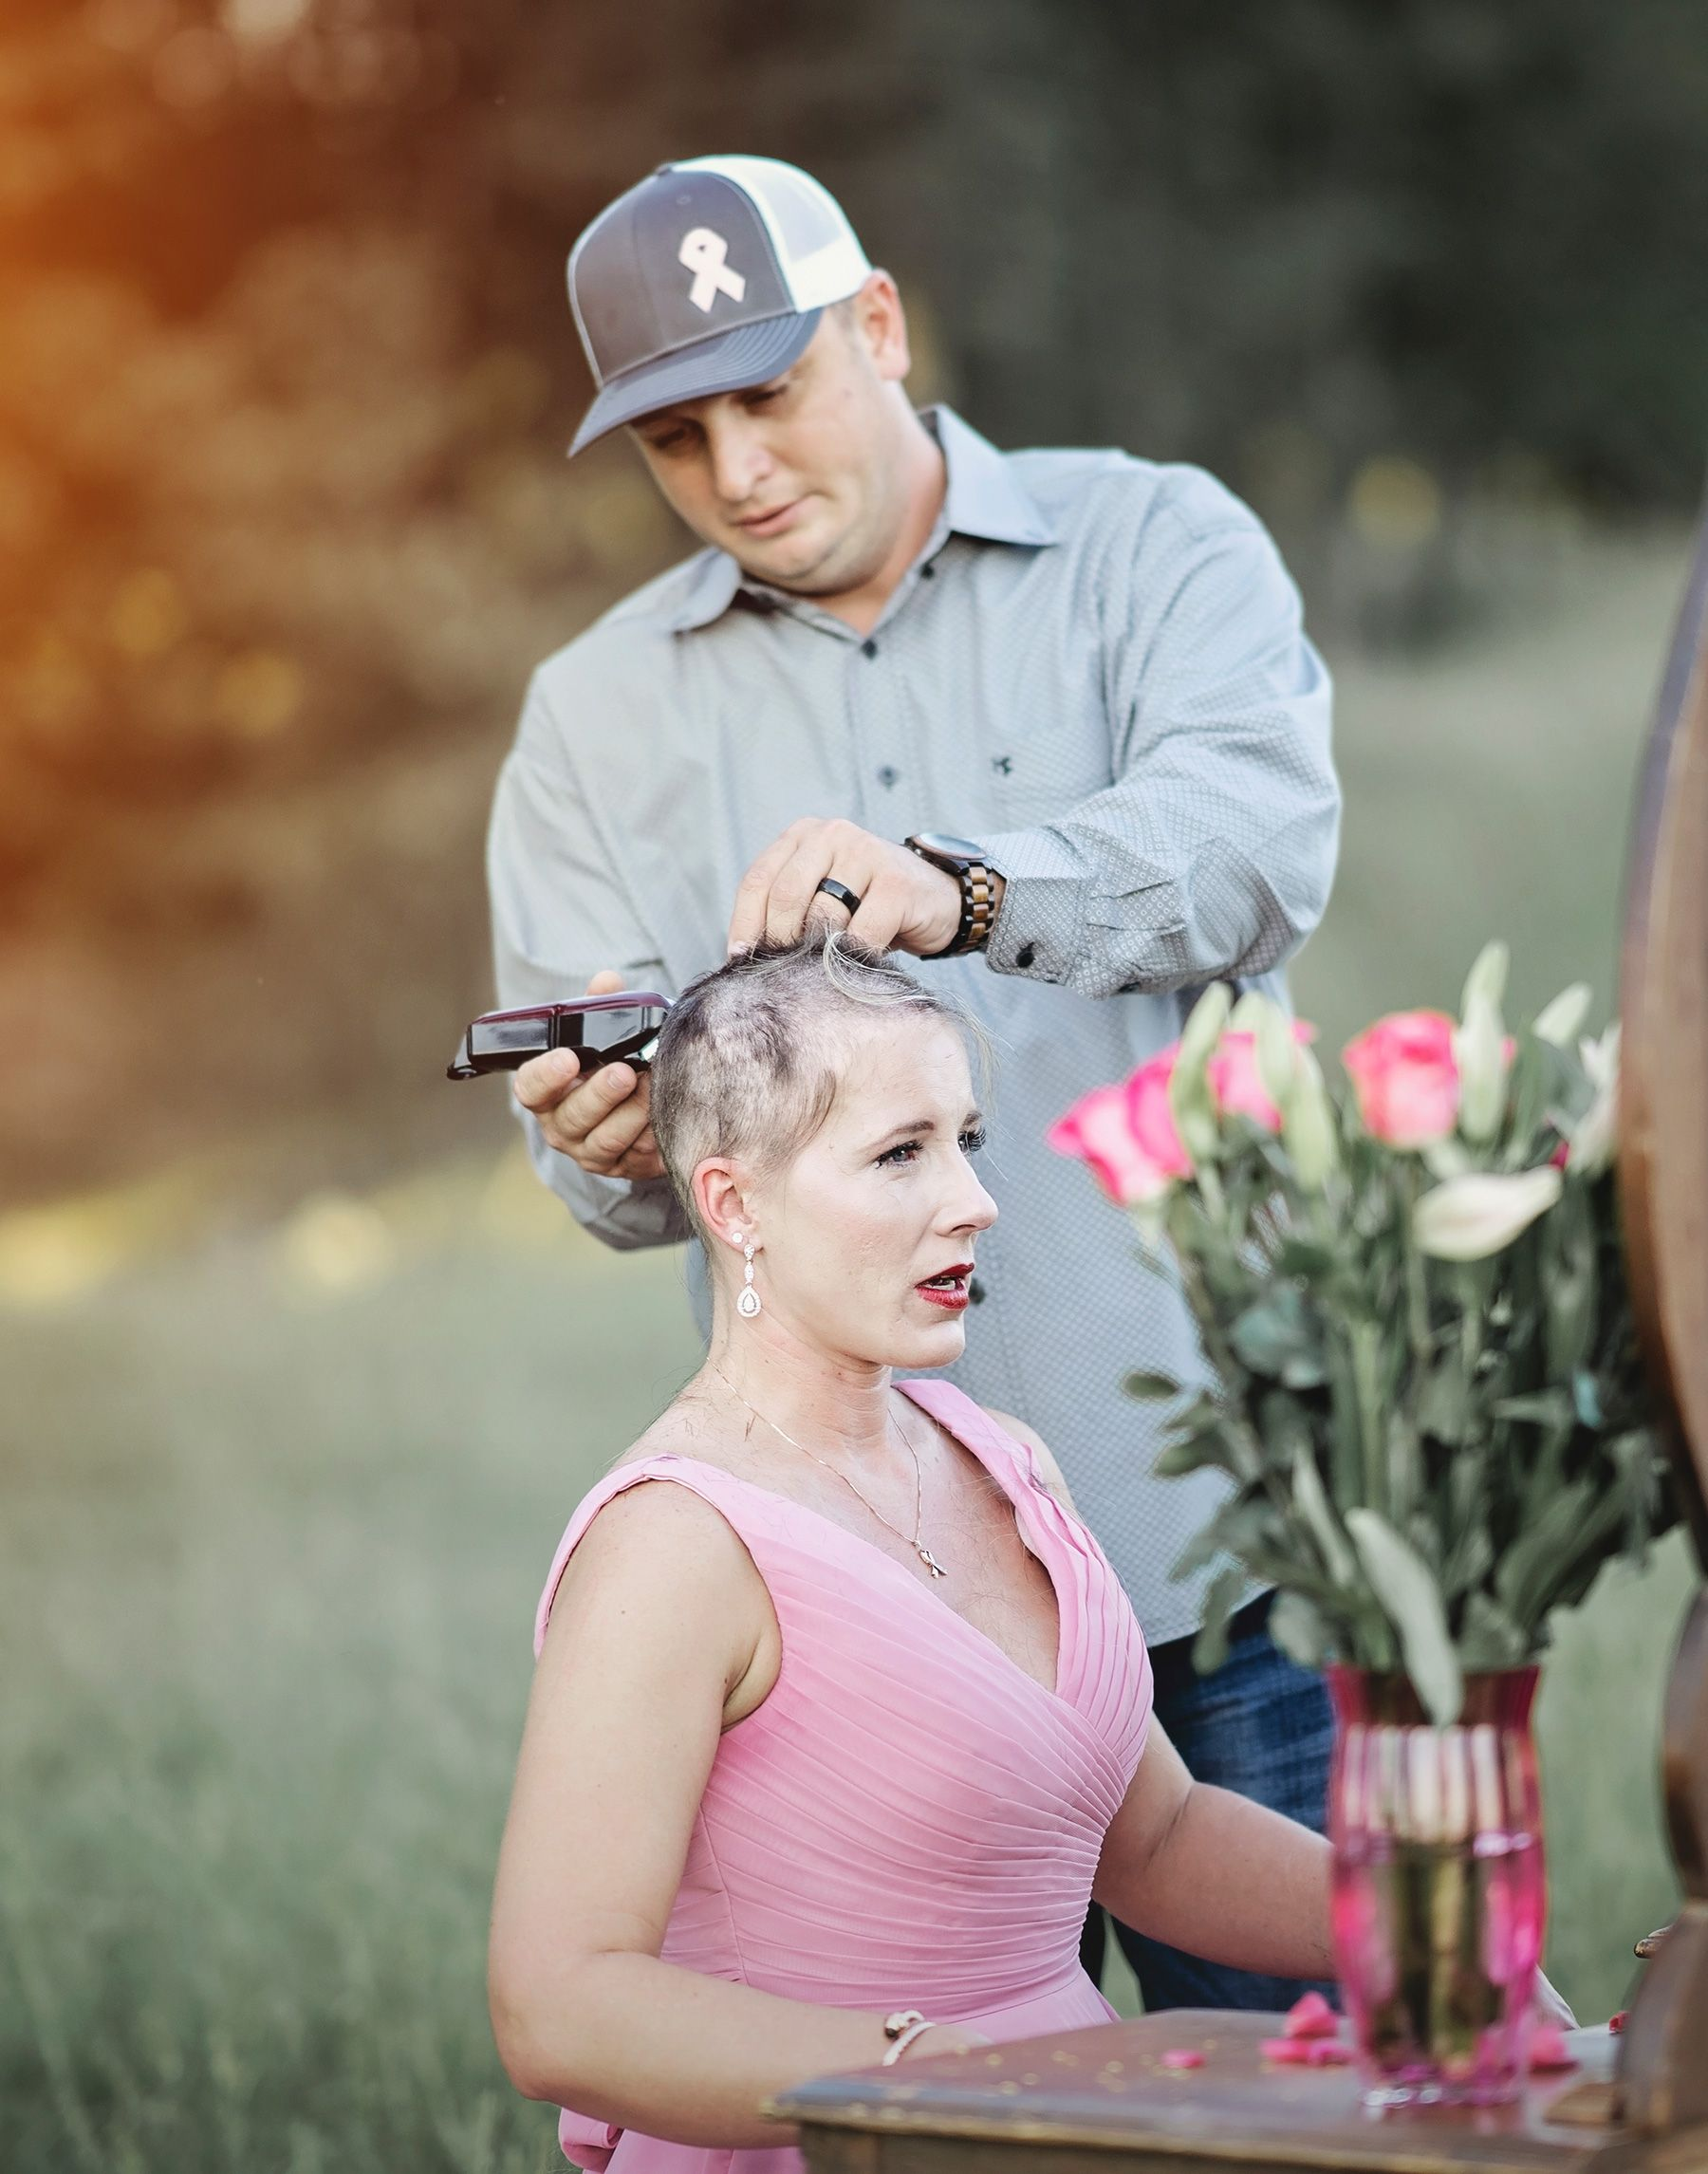 Husband Shaves Wife's Head In Beautiful Photoshoot To Fight Back Against Breast Cancer